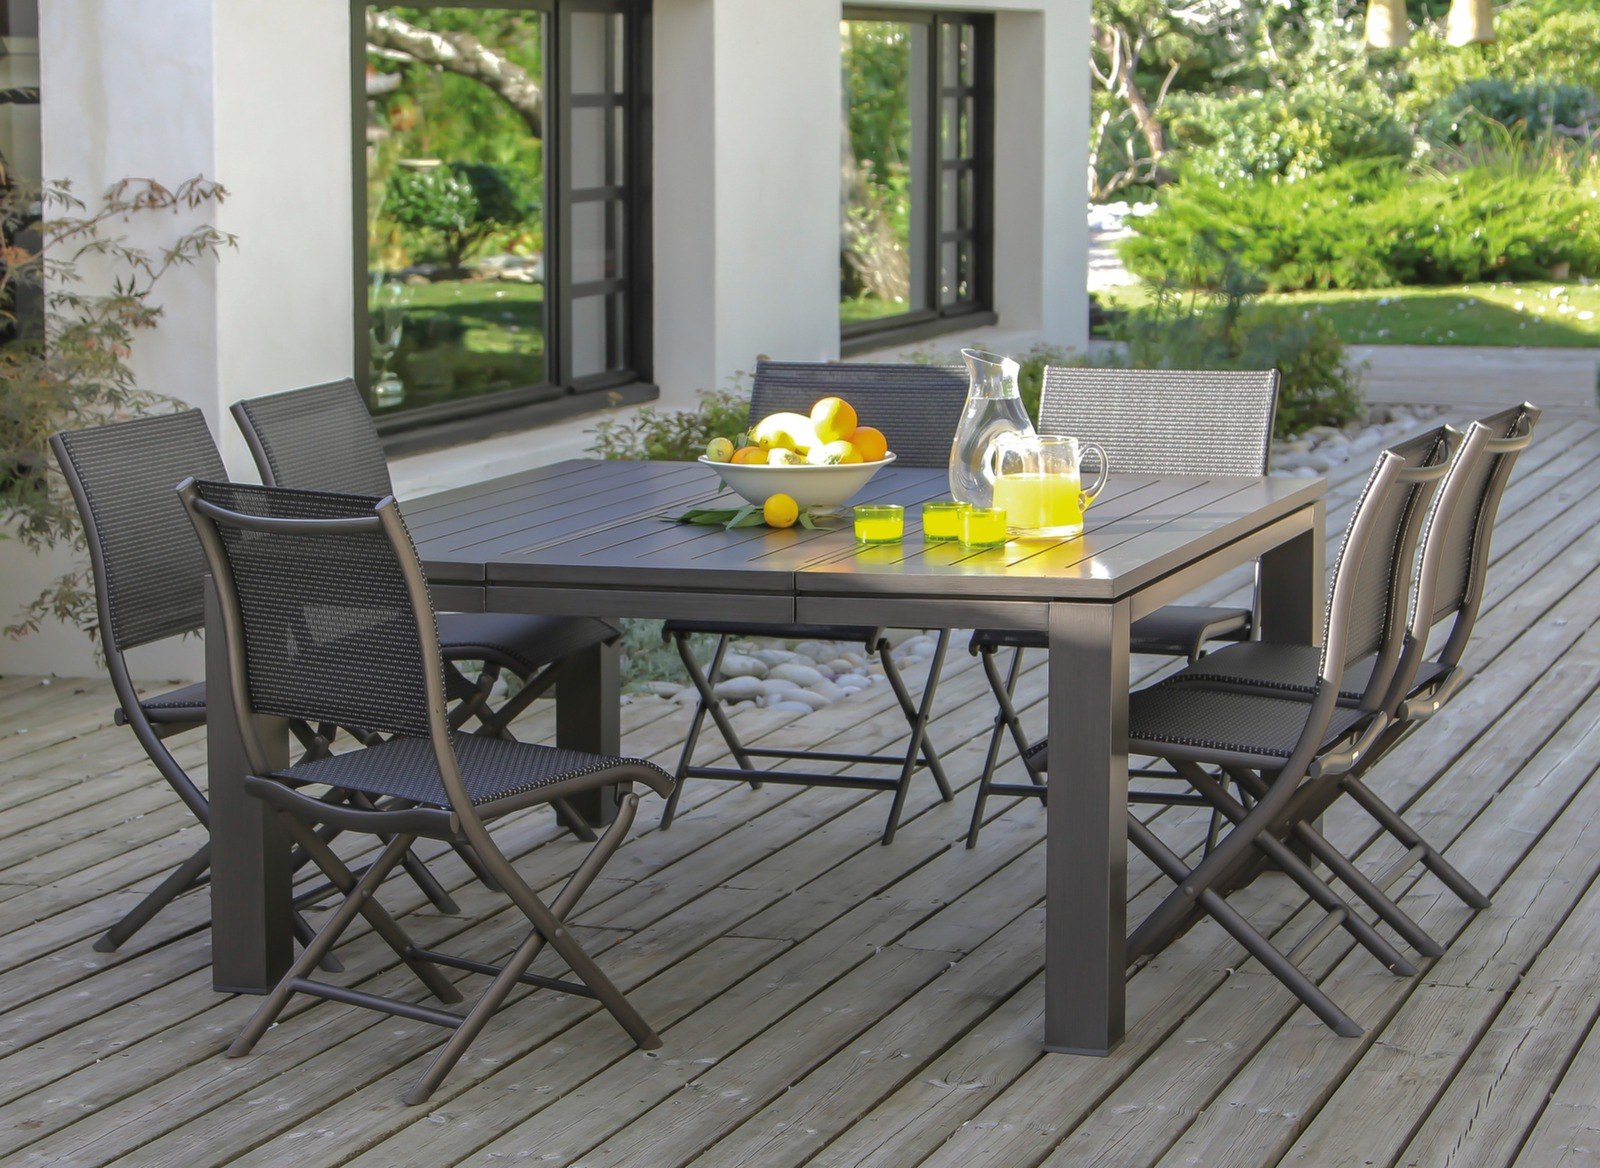 Table Latino - Table extensible - Mobilier de jardin Proloisirs